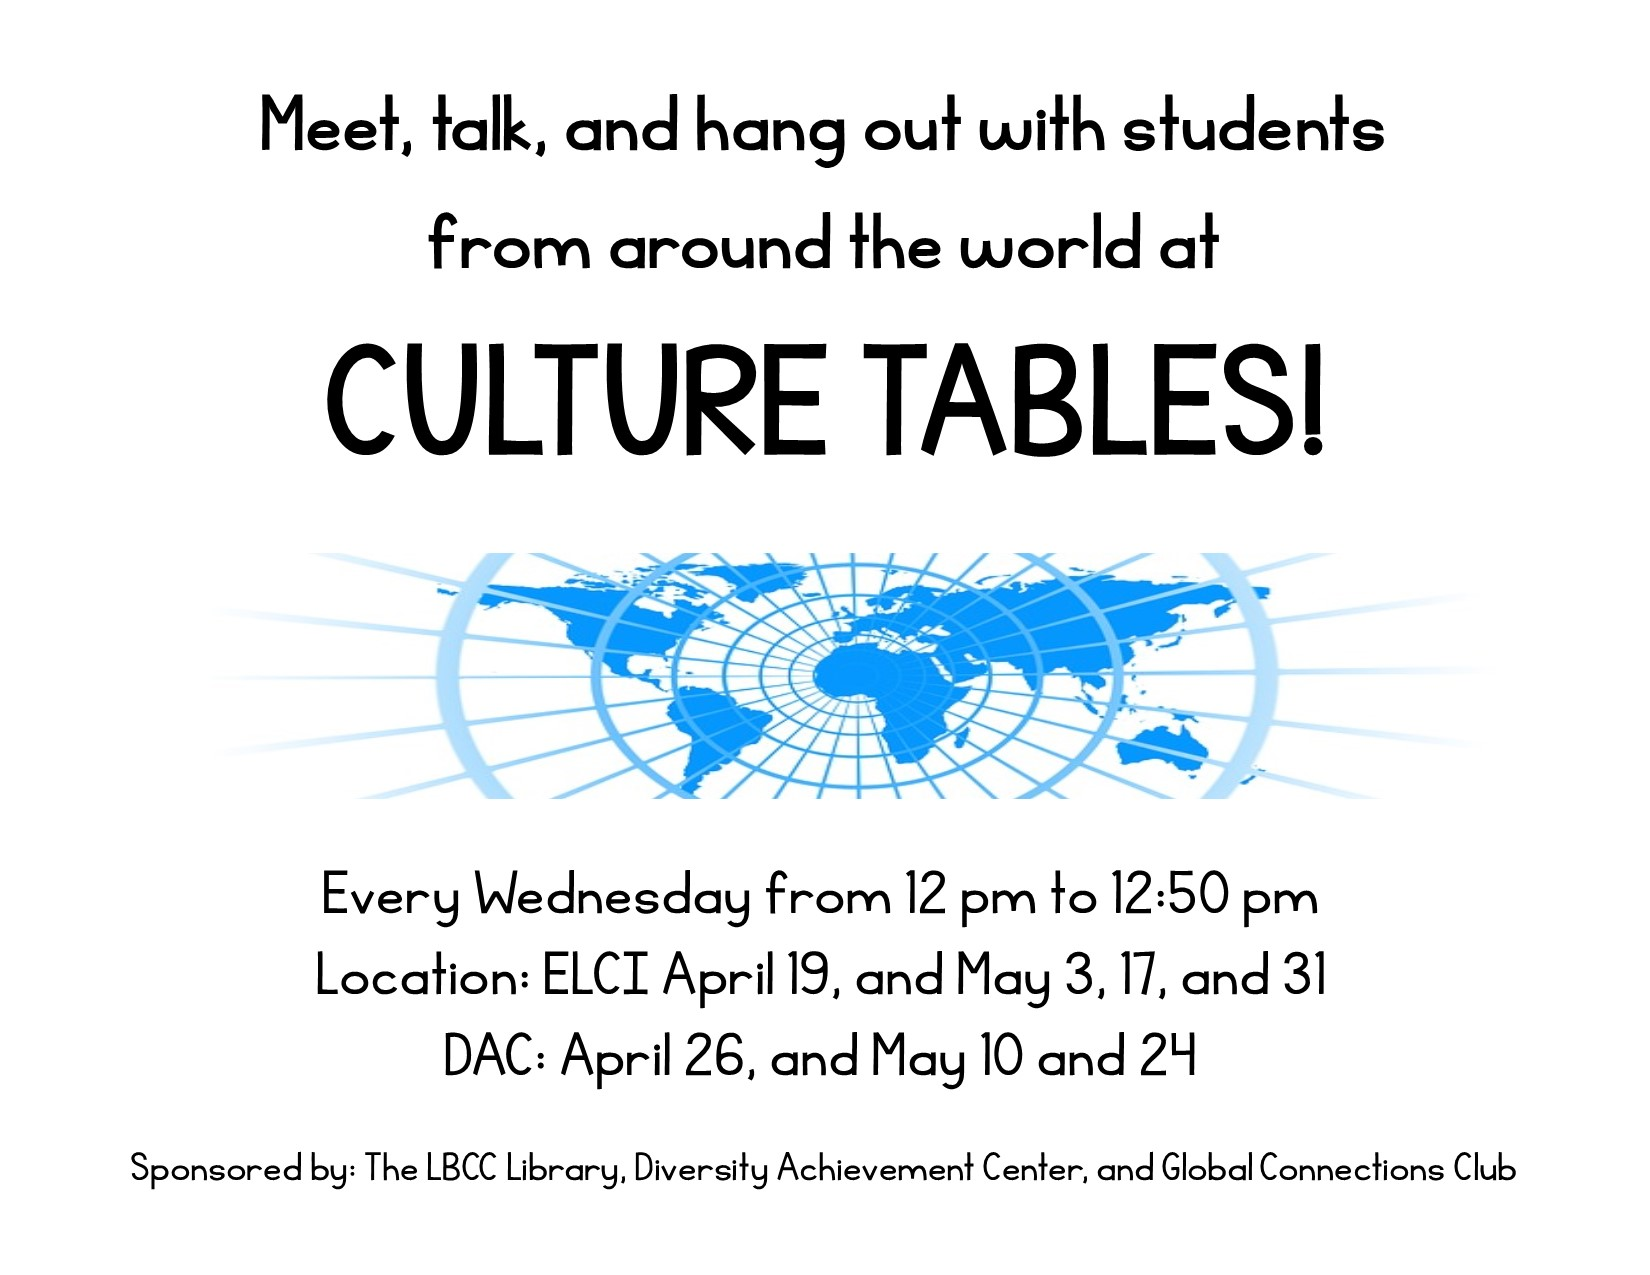 Image of flyer used for Culture Tables